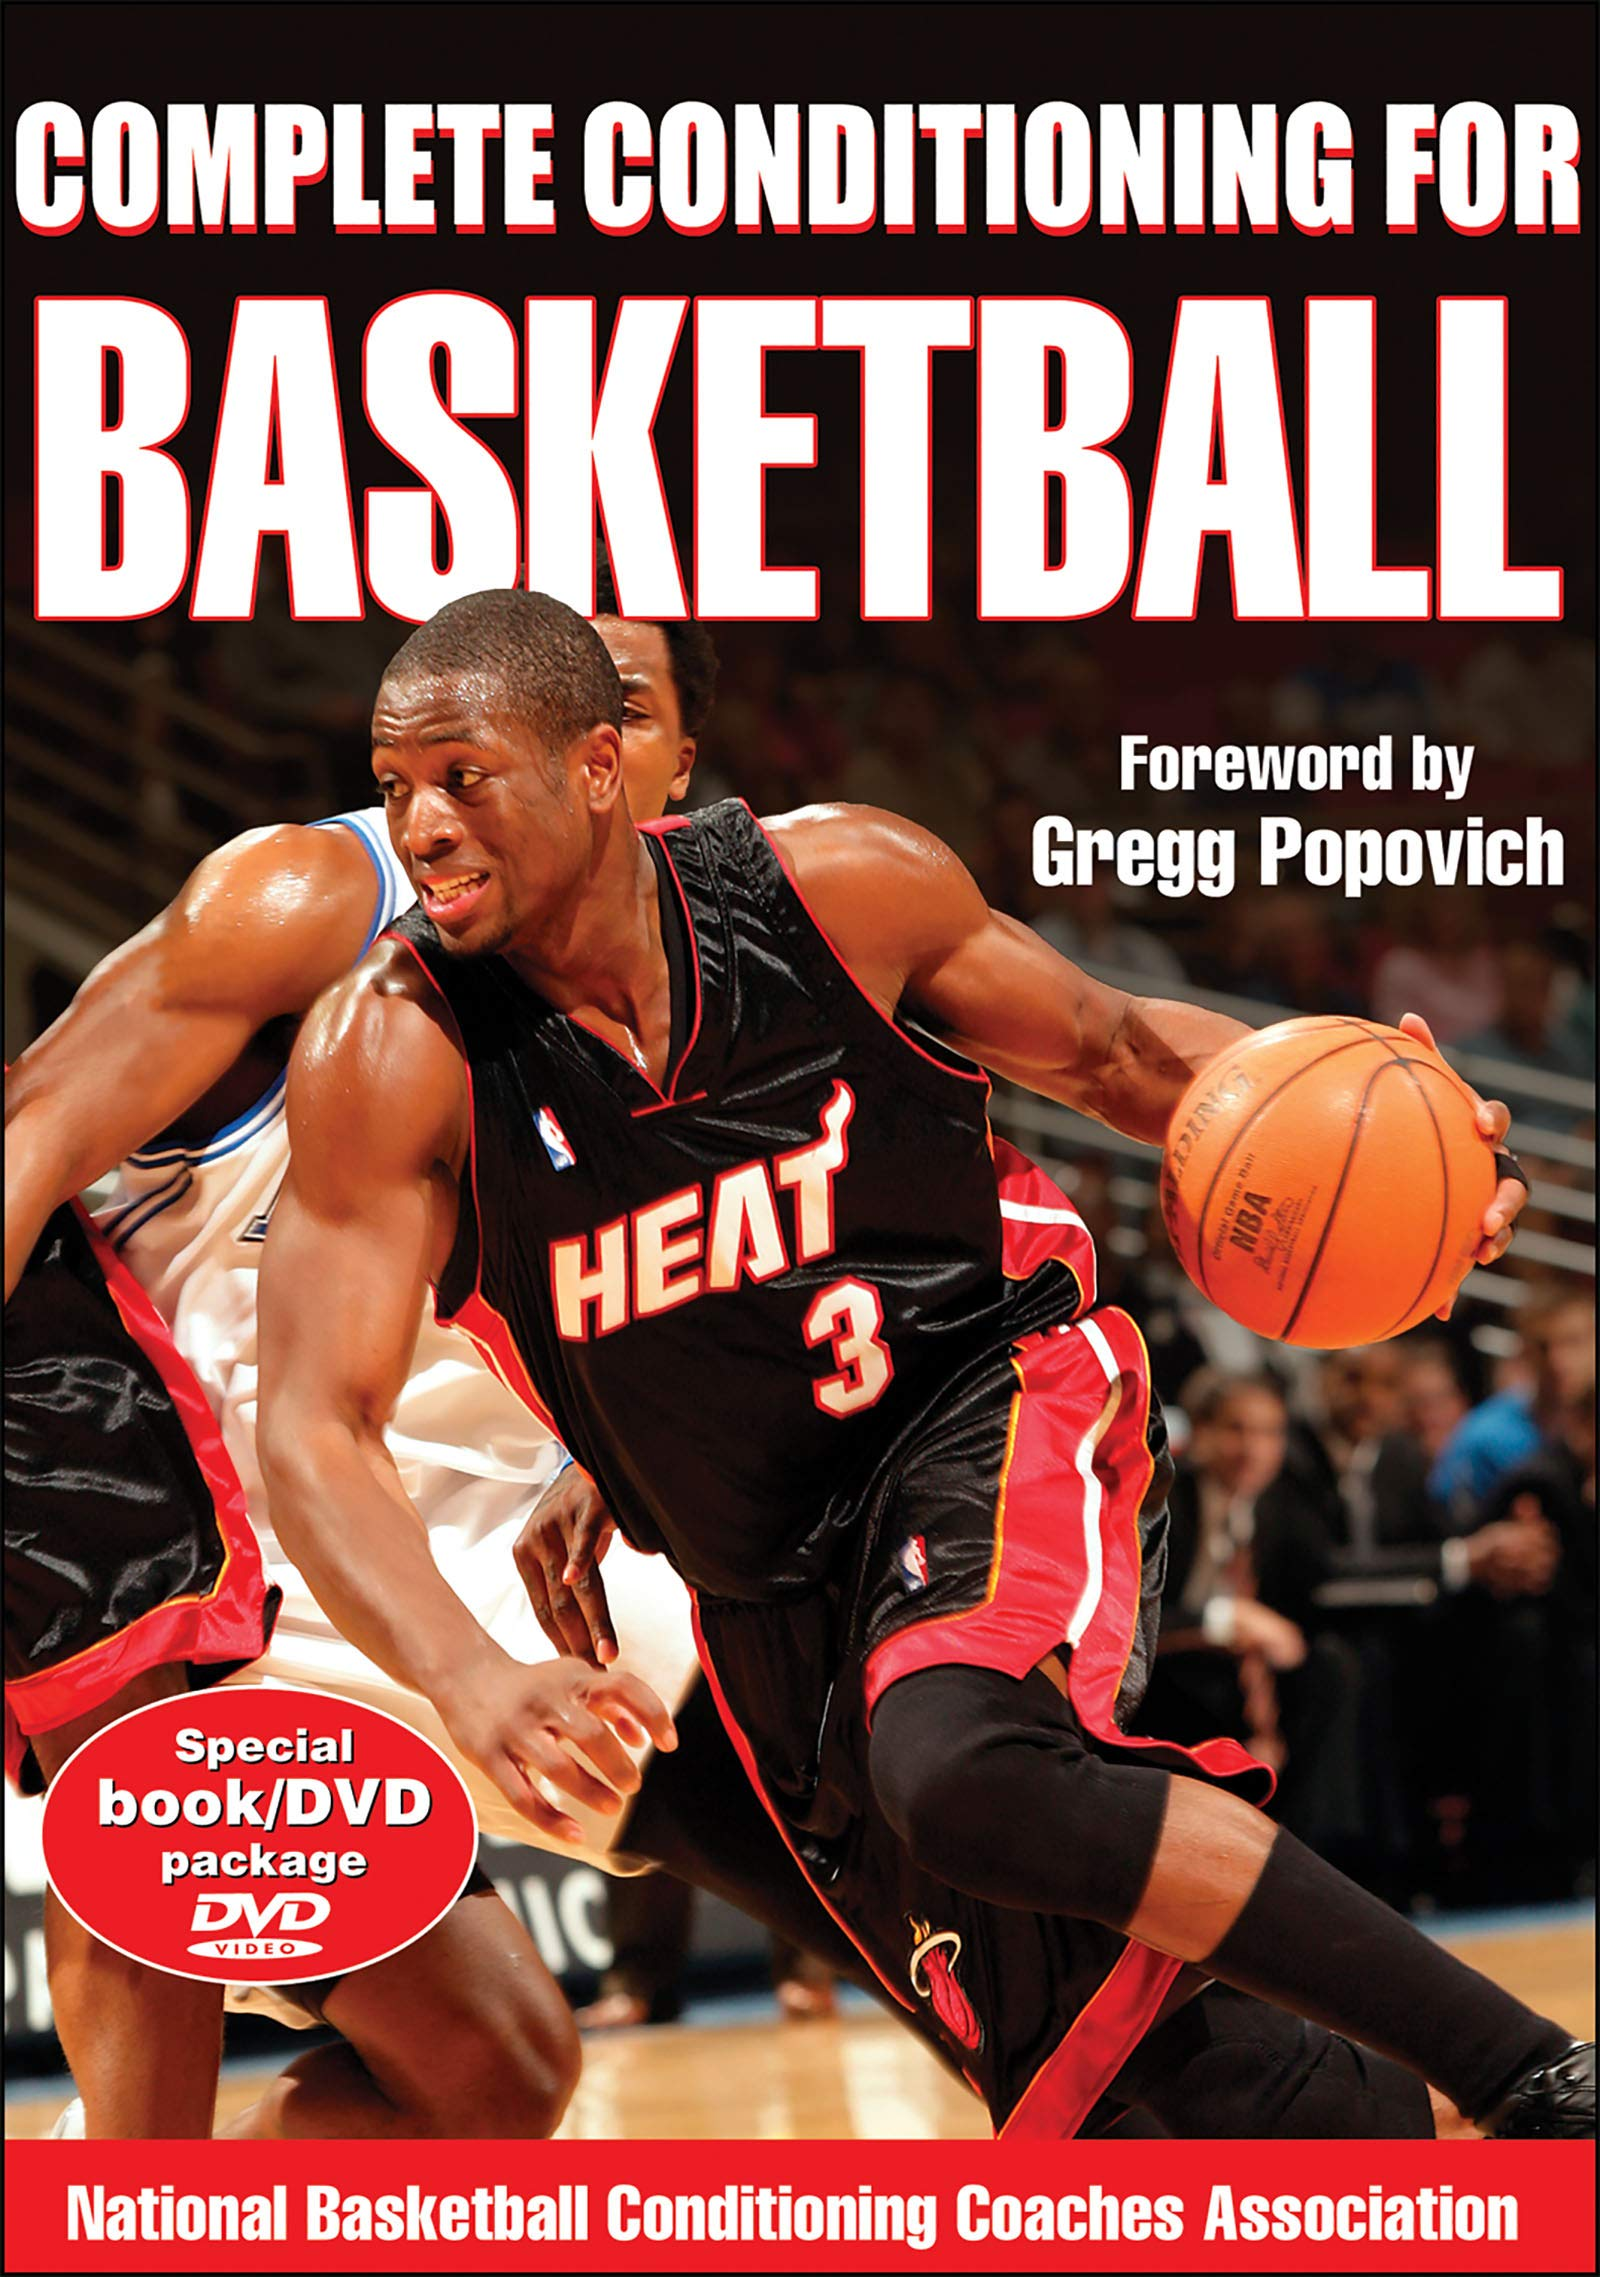 Amazon.com: Complete Conditioning for Basketball (9780736057844): National  Basketball Conditioning Coaches Association: Books